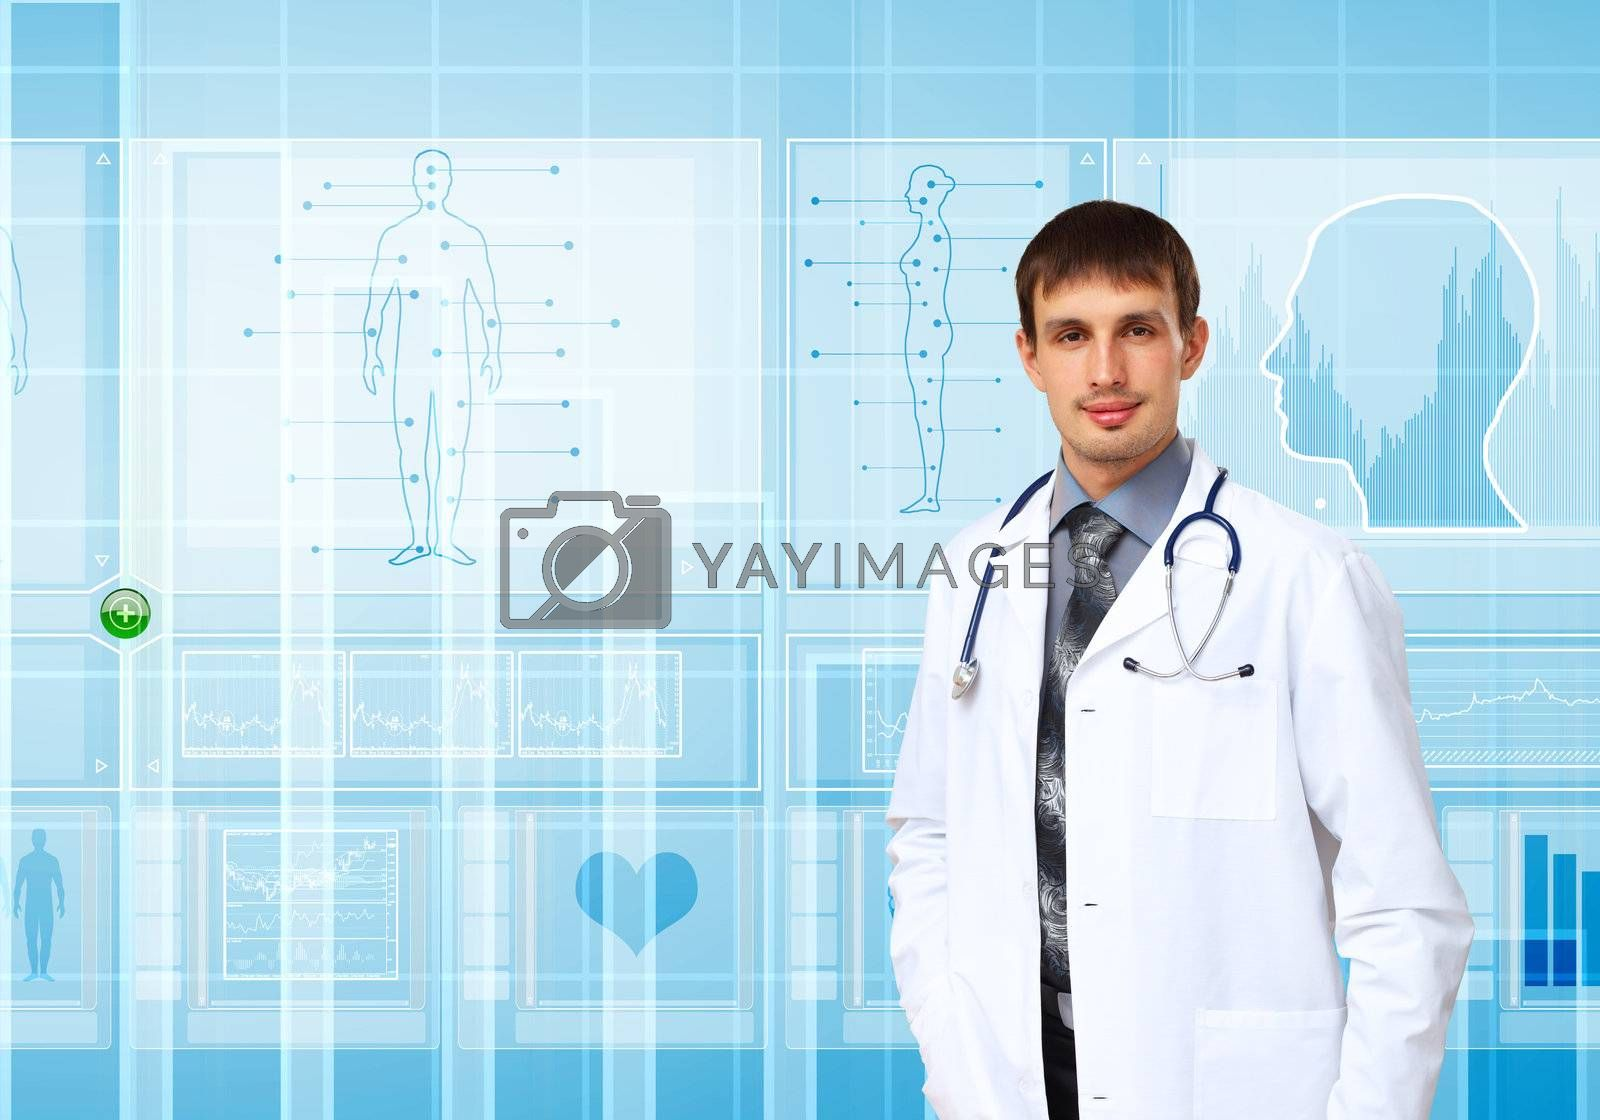 Royalty free image of Medicine and technology by Sergey Nivens